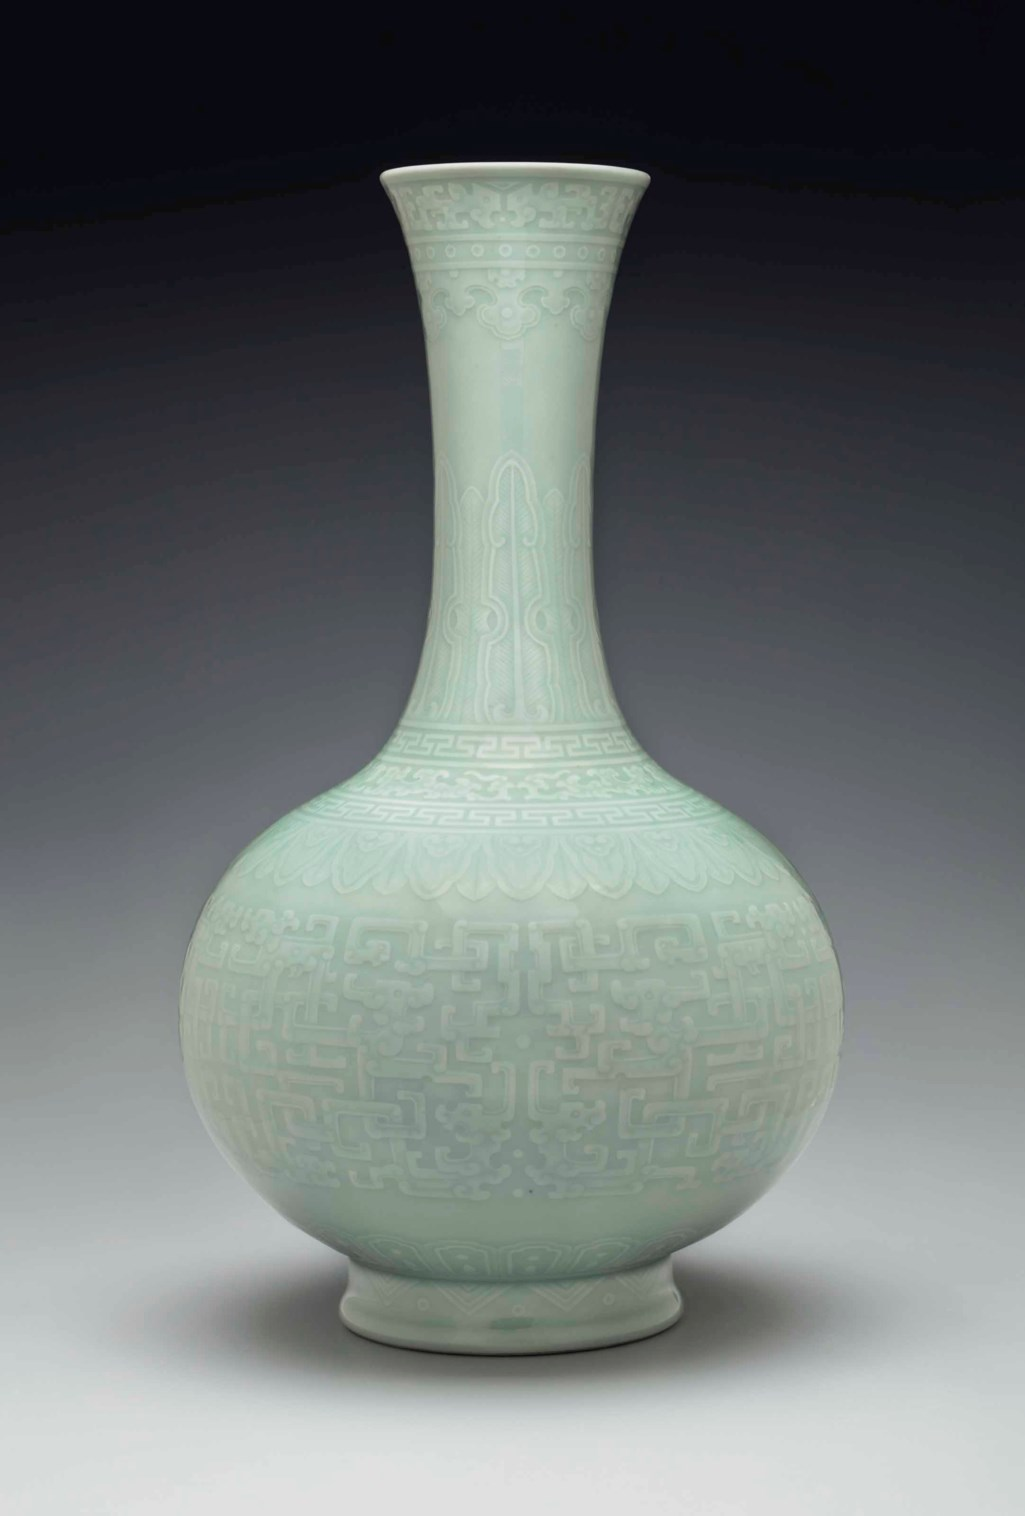 A RARE AND EXCEPTIONAL CELADON-GLAZED RELIEF-DECORATED BOTTLE VASE